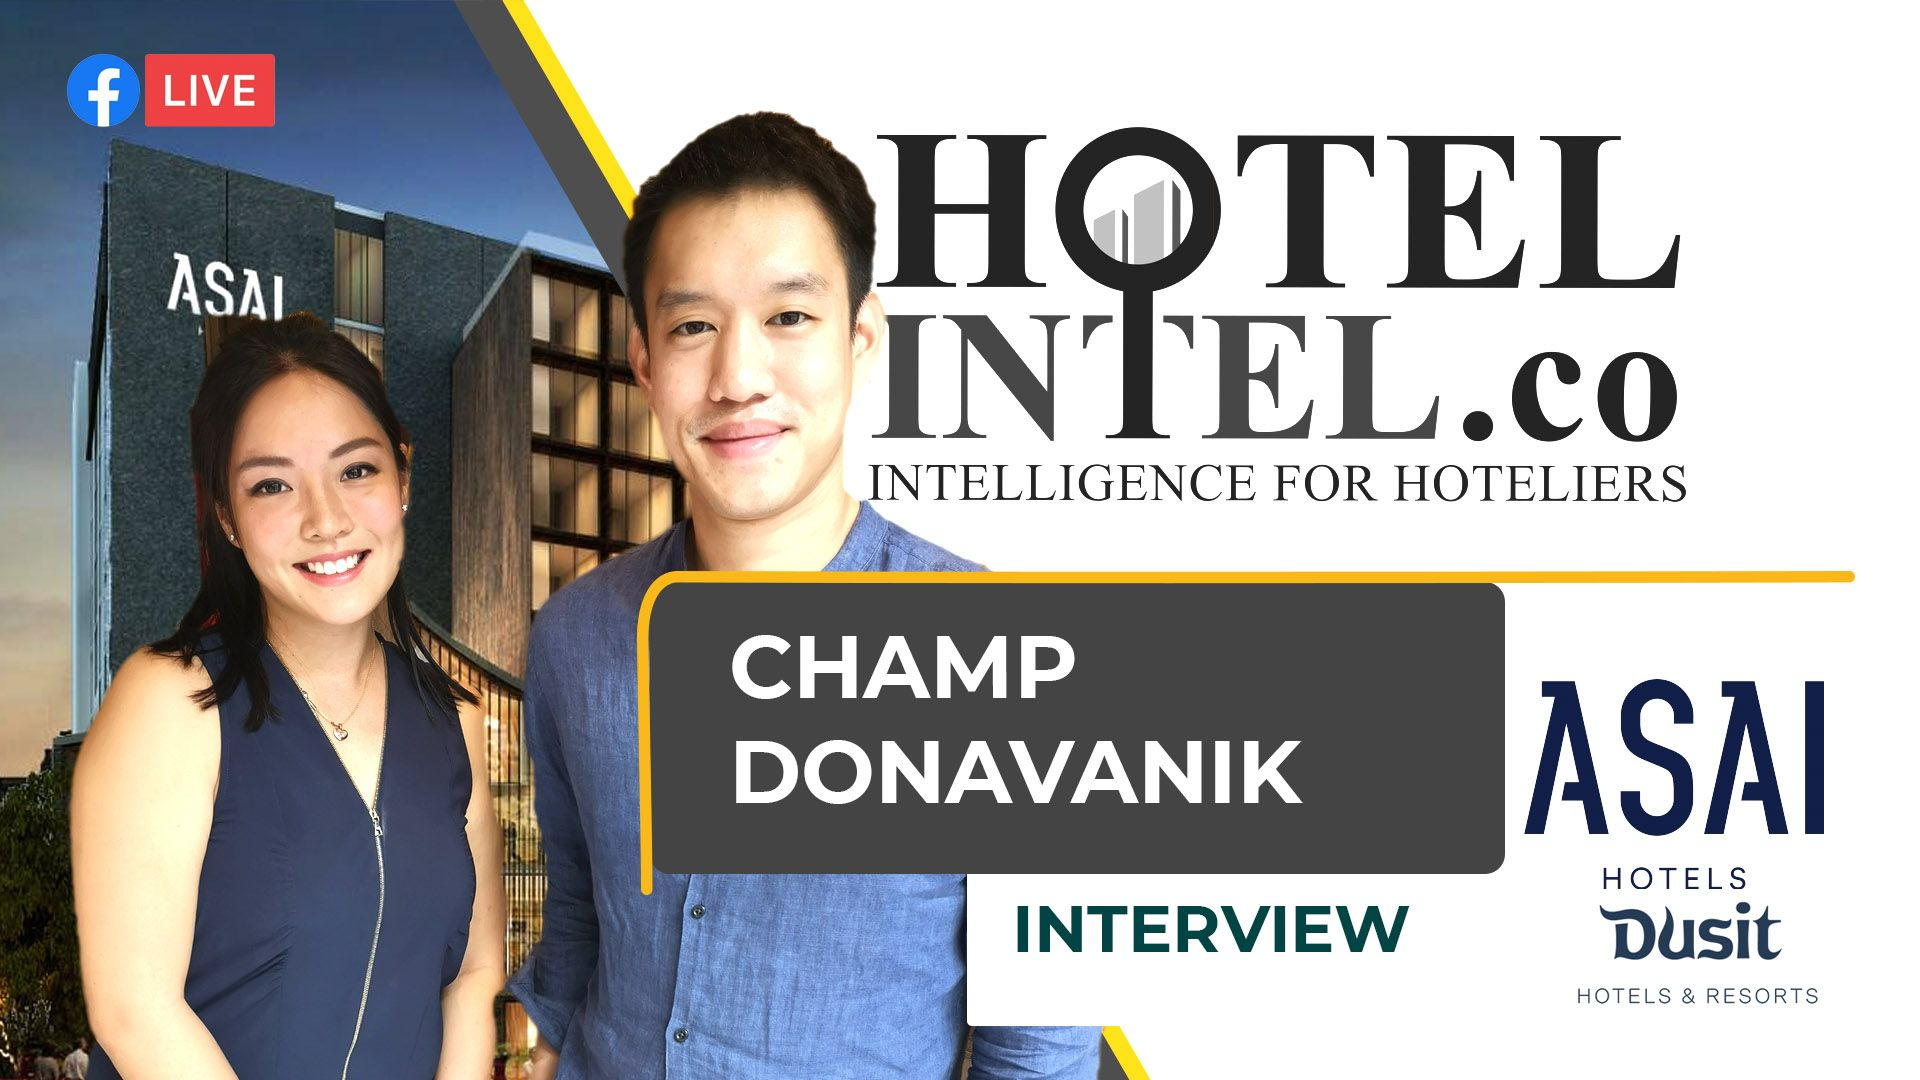 Hotelintel.co LIVE - Dusit Heir Champ Donavanik on ASAI and Launching a Hotel Brand during COVID(Untitled)